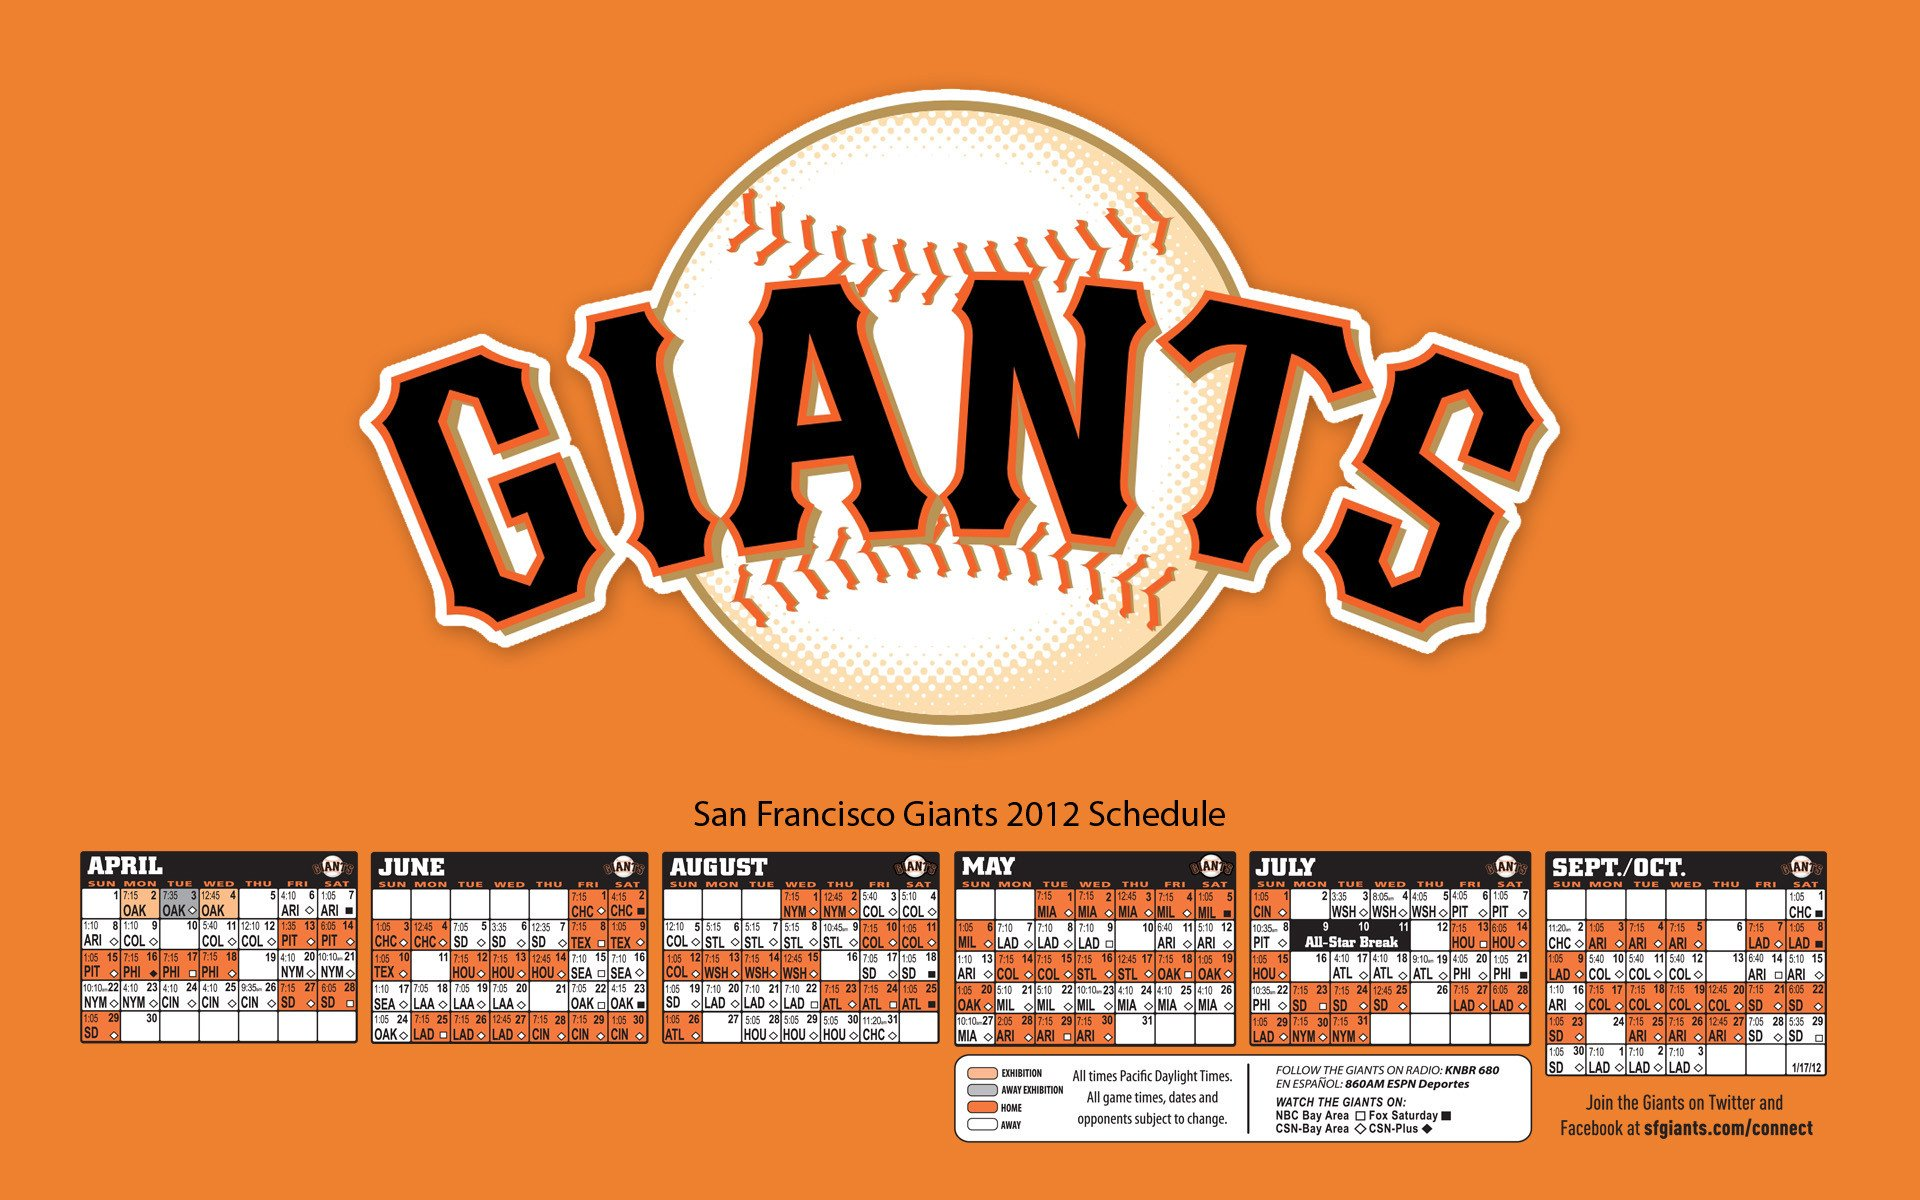 sf giants 2015 schedule wallpaper - wallpapersafari